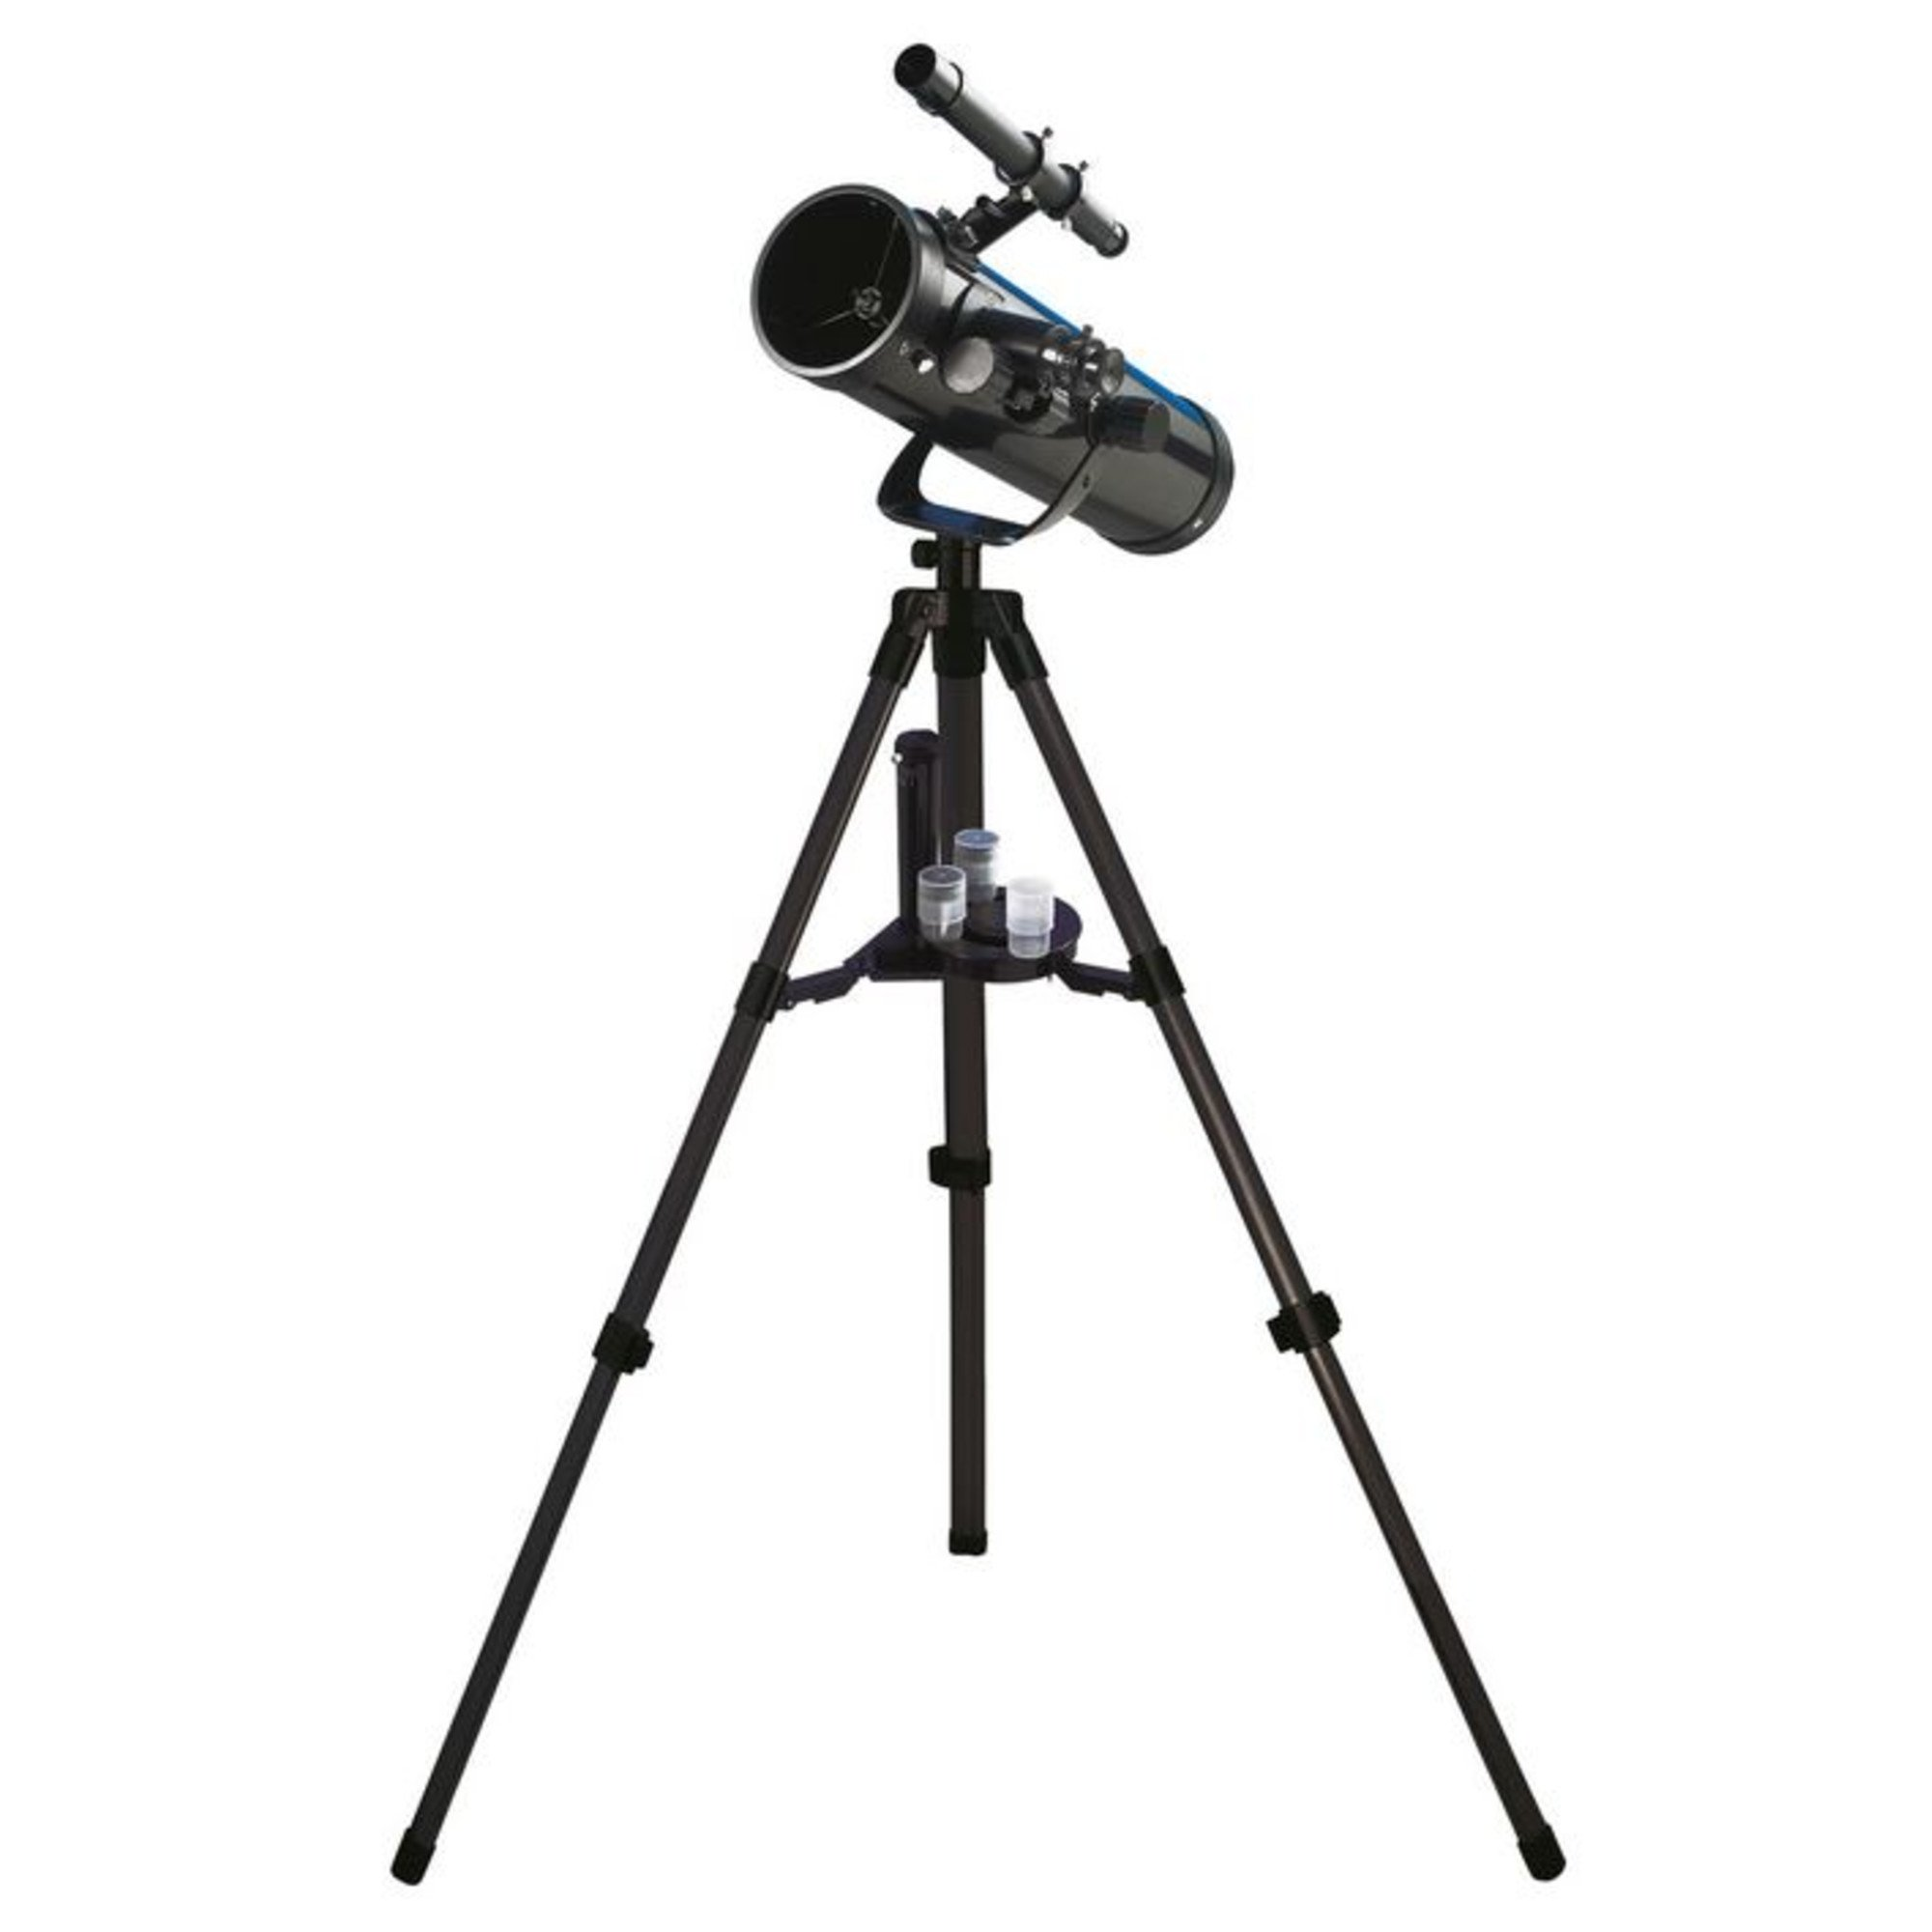 Buki Beginner Astronomer Reflective Telescope 375x Zoom for Kids Age 8 and Up by Buki